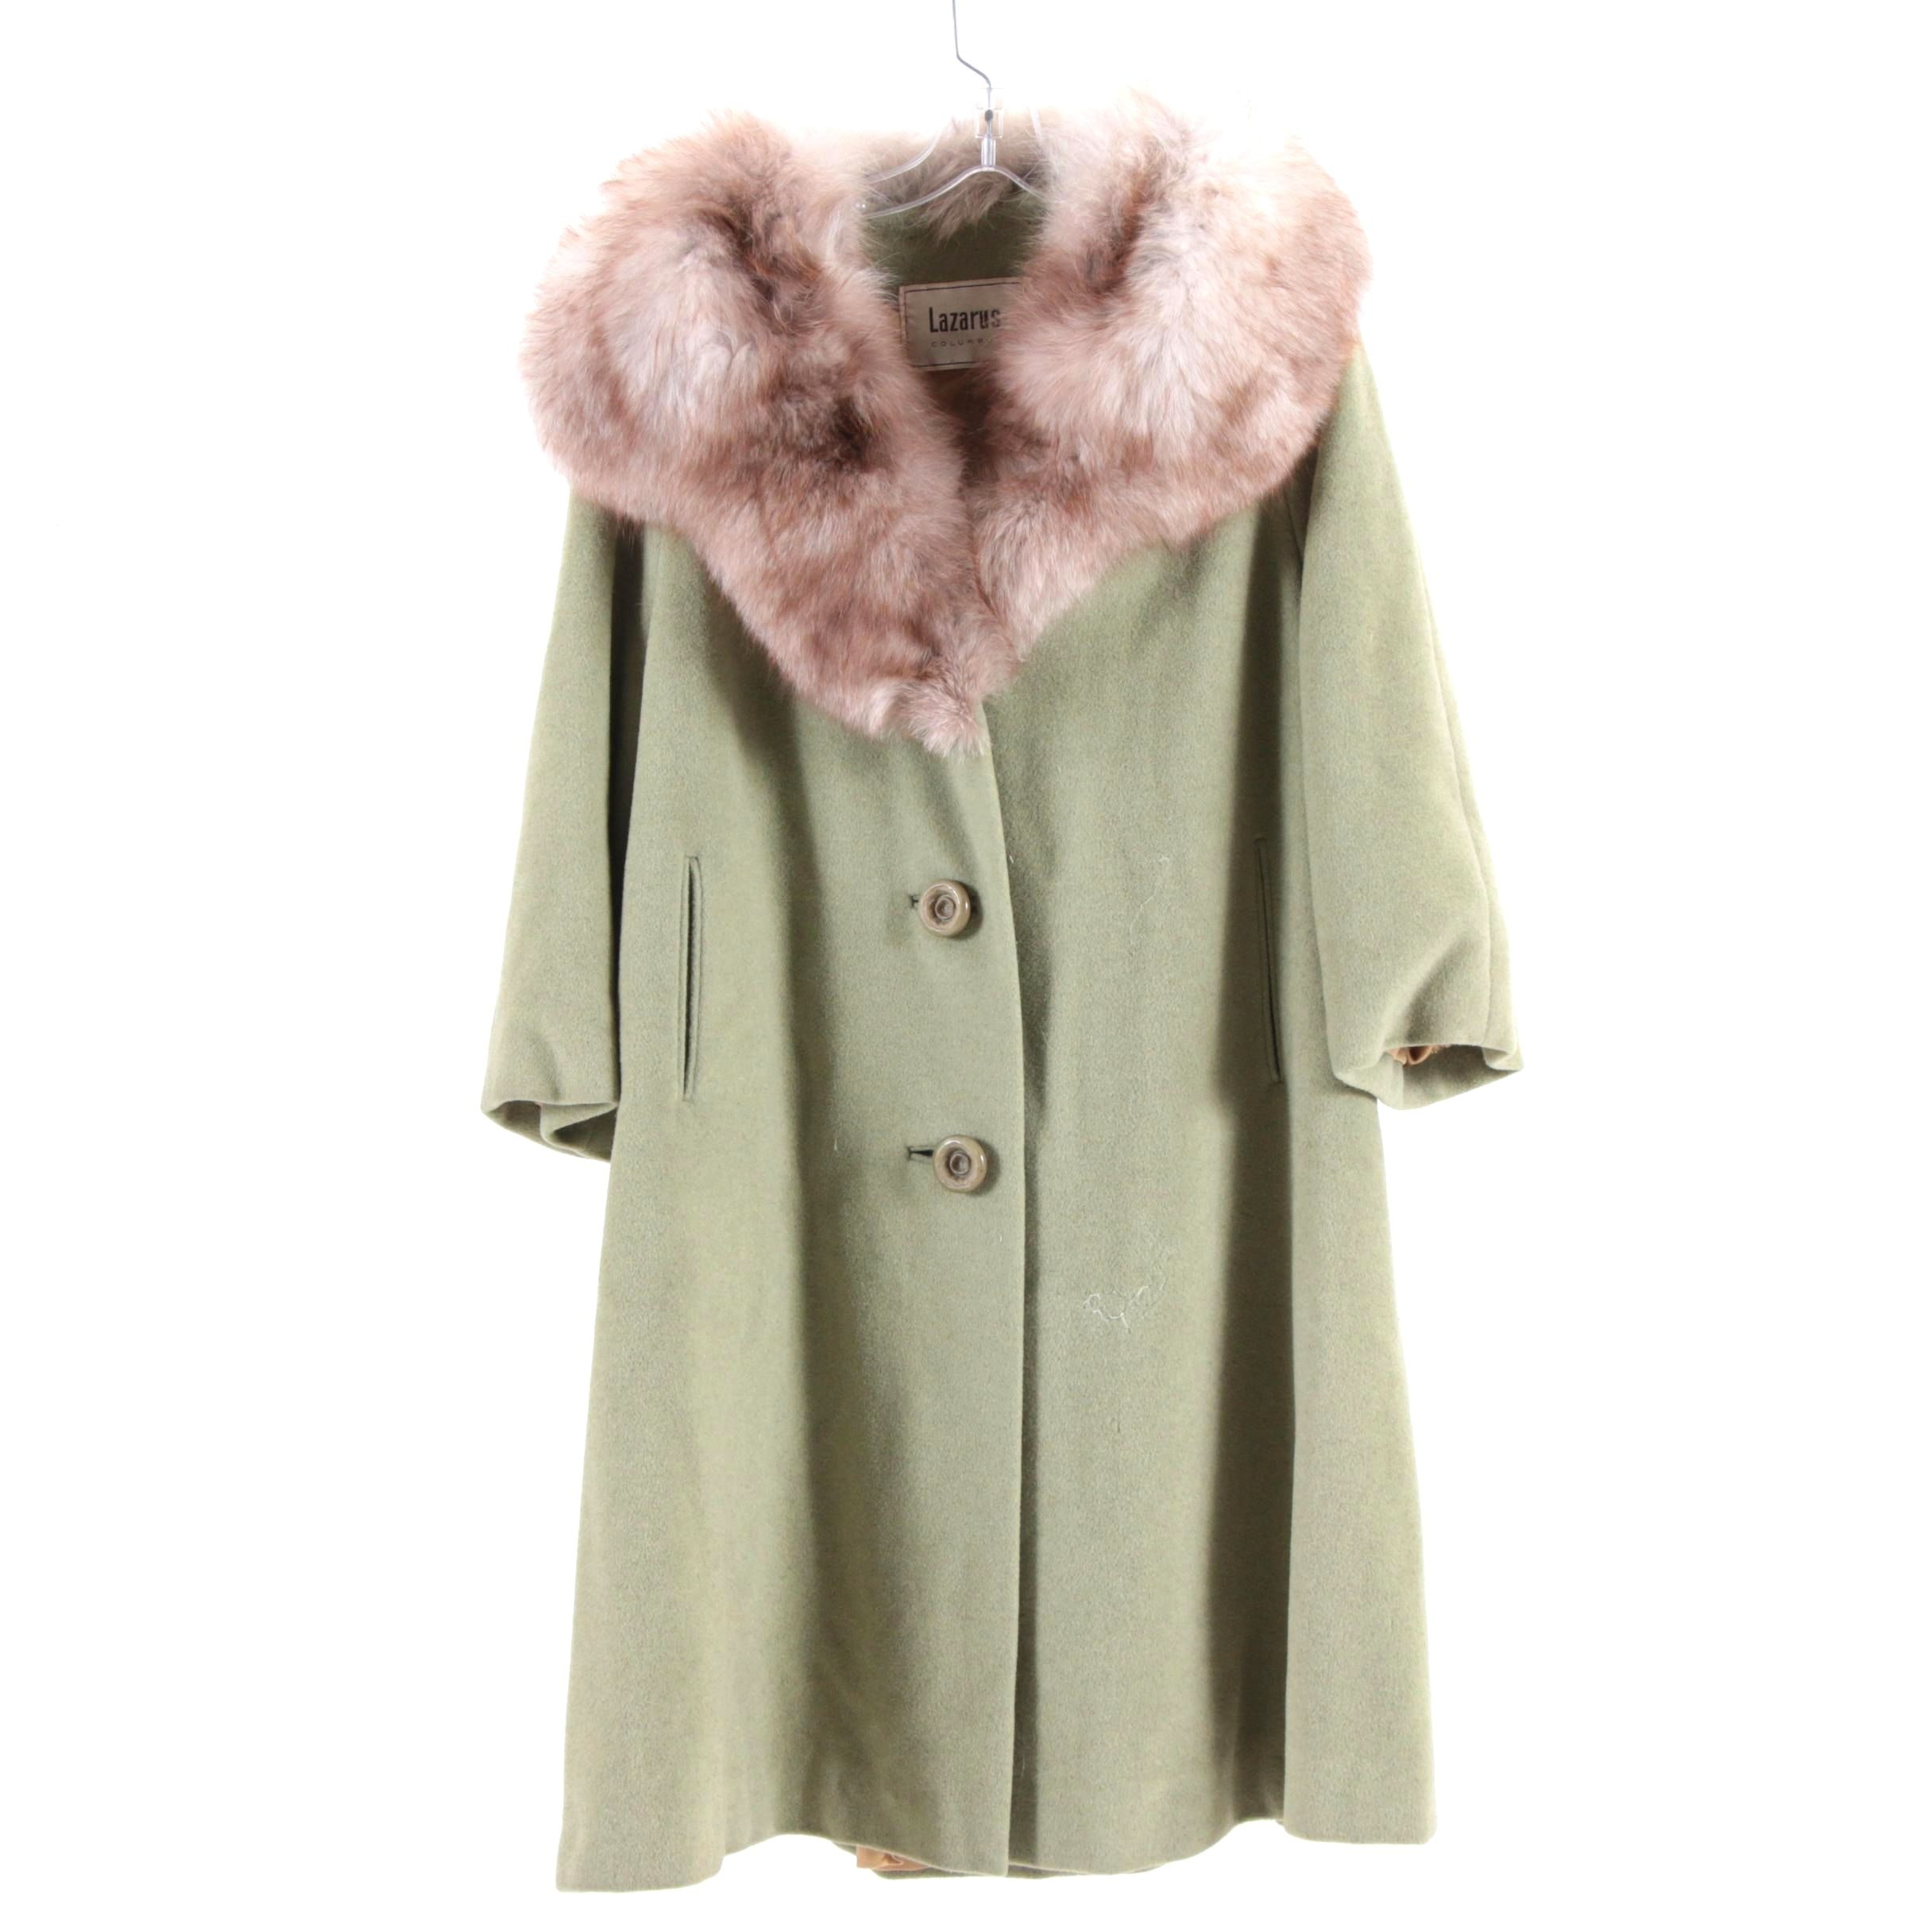 Surrella for Diane Original Wool Blend Coat with Fox Fur Collar, Vintage